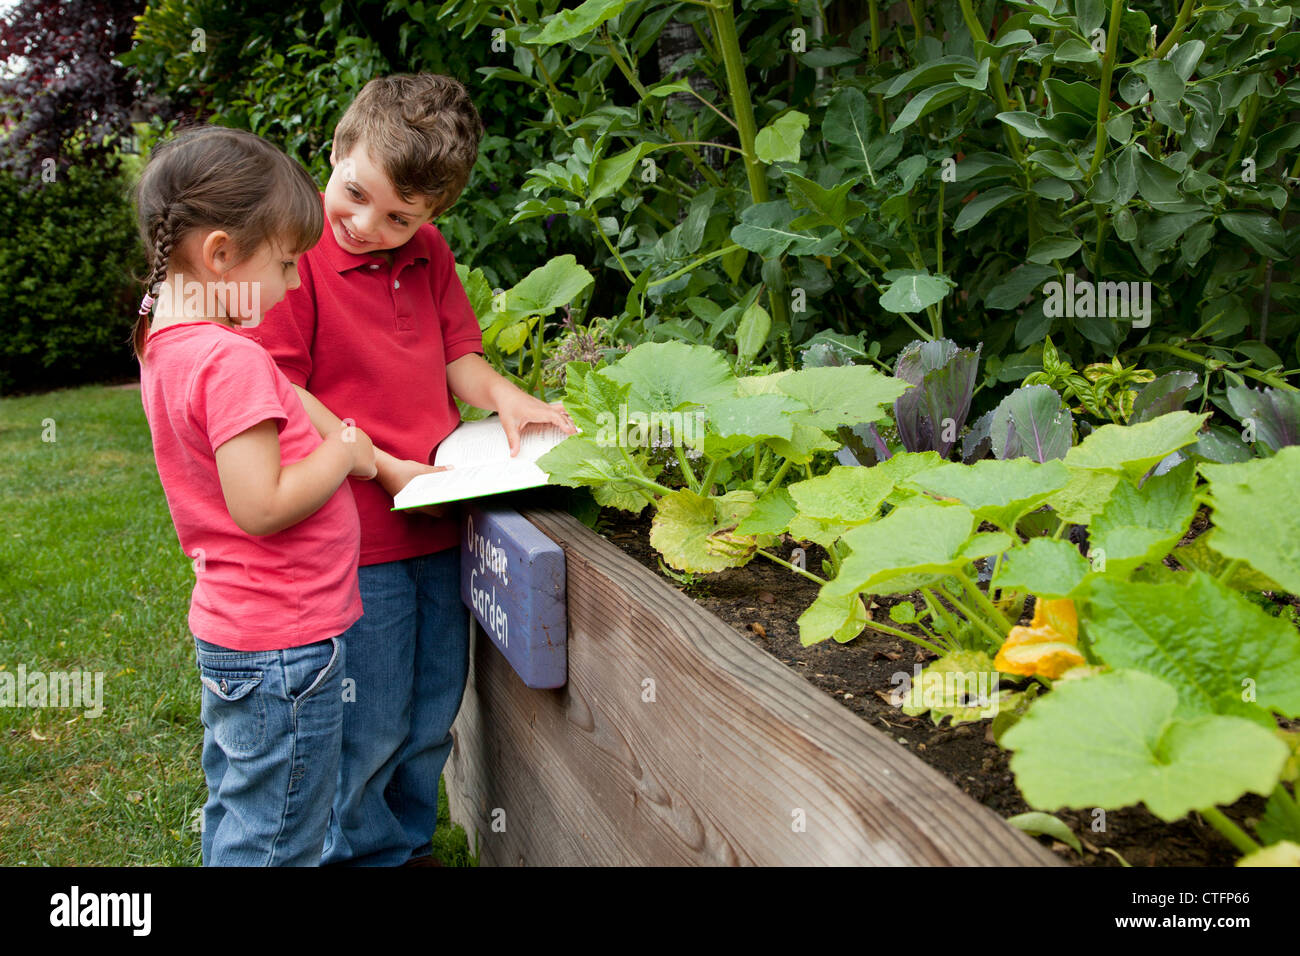 A boy and girl are looking at plants in a backyard garden. - Stock Image